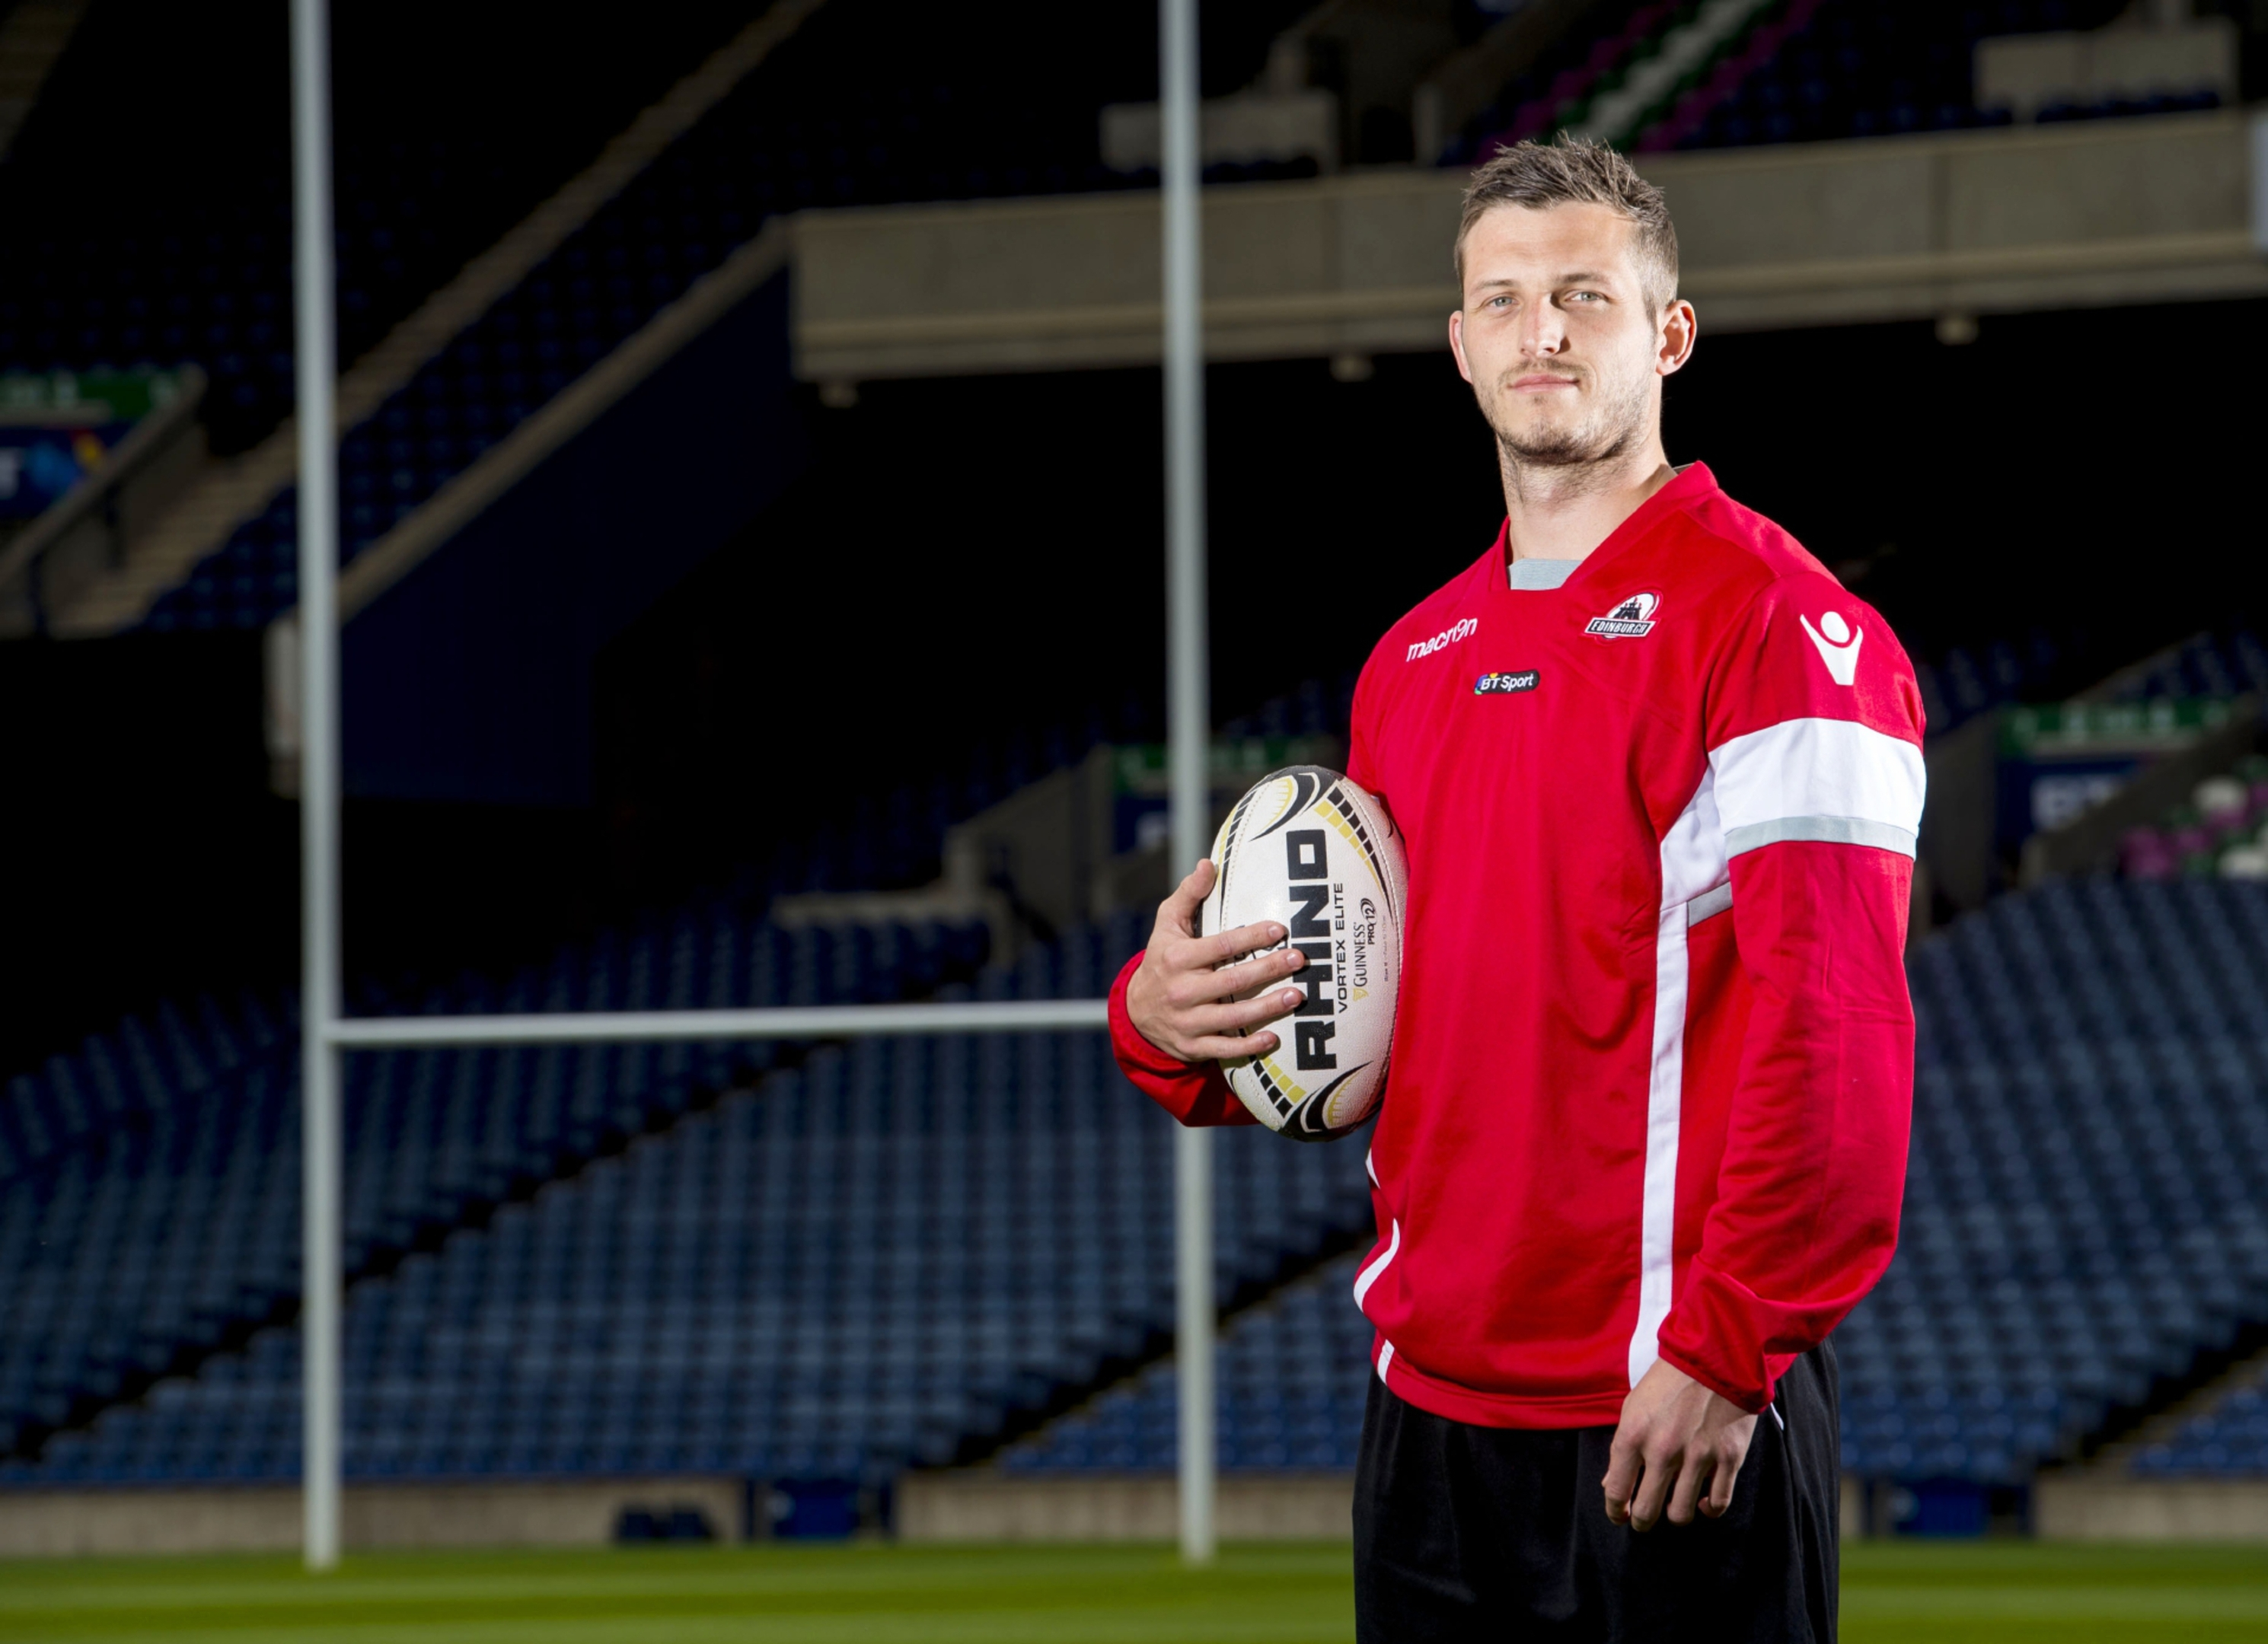 Jason Tovey has signed for two more years after a successful loan period at Edinburgh.